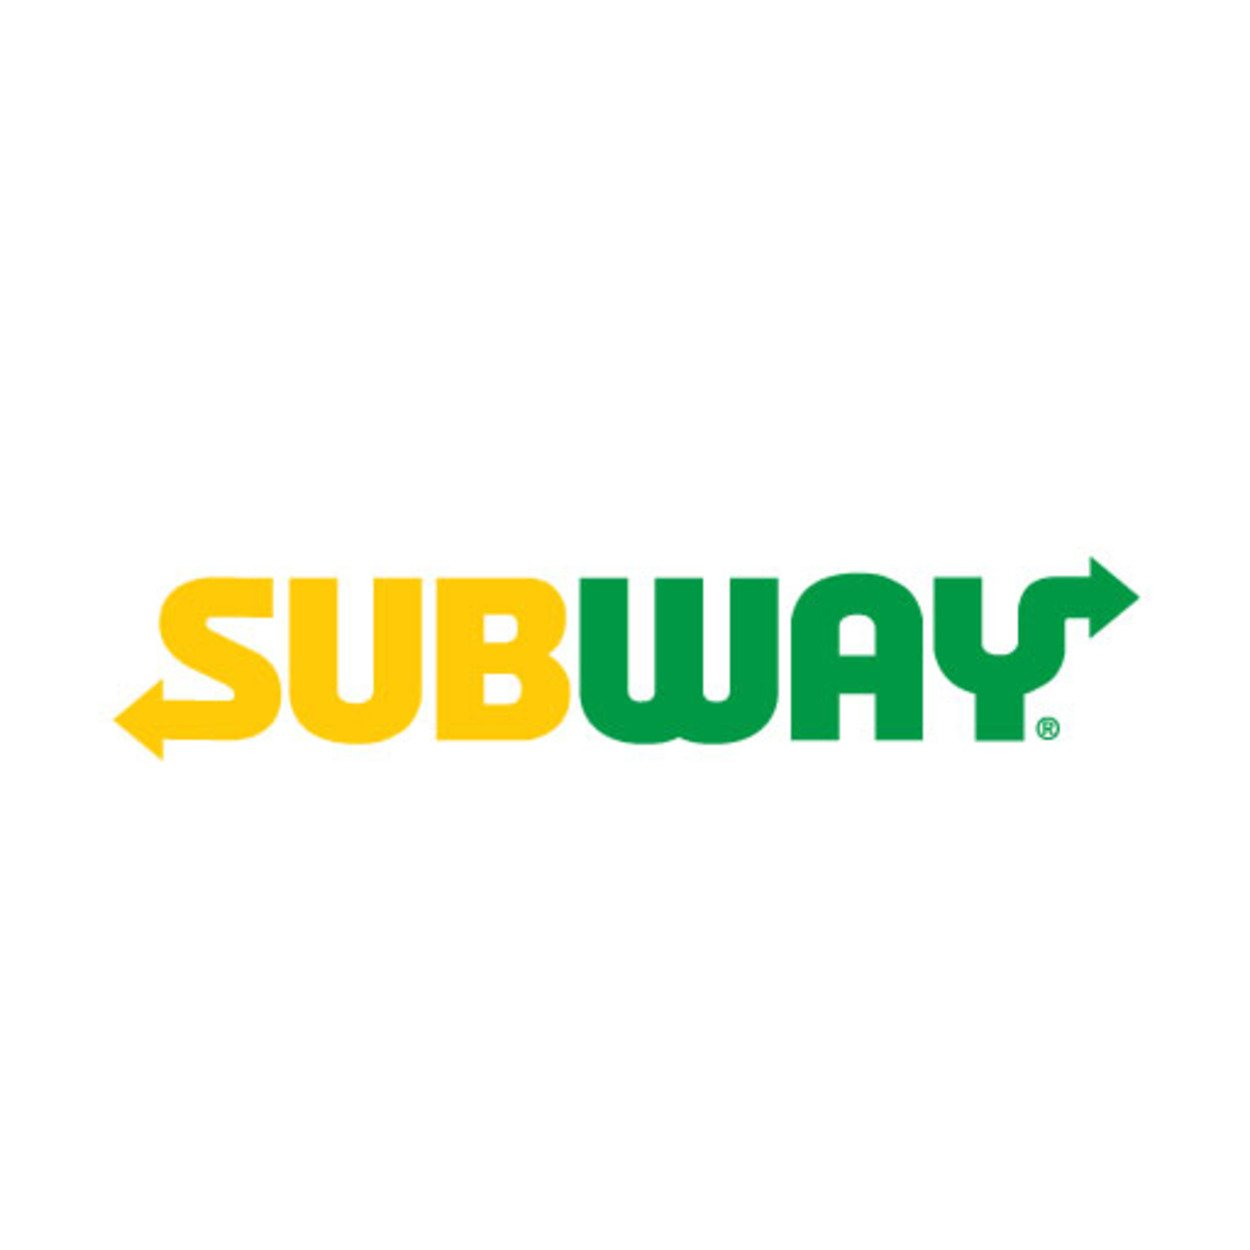 subway signed up with Skypark One